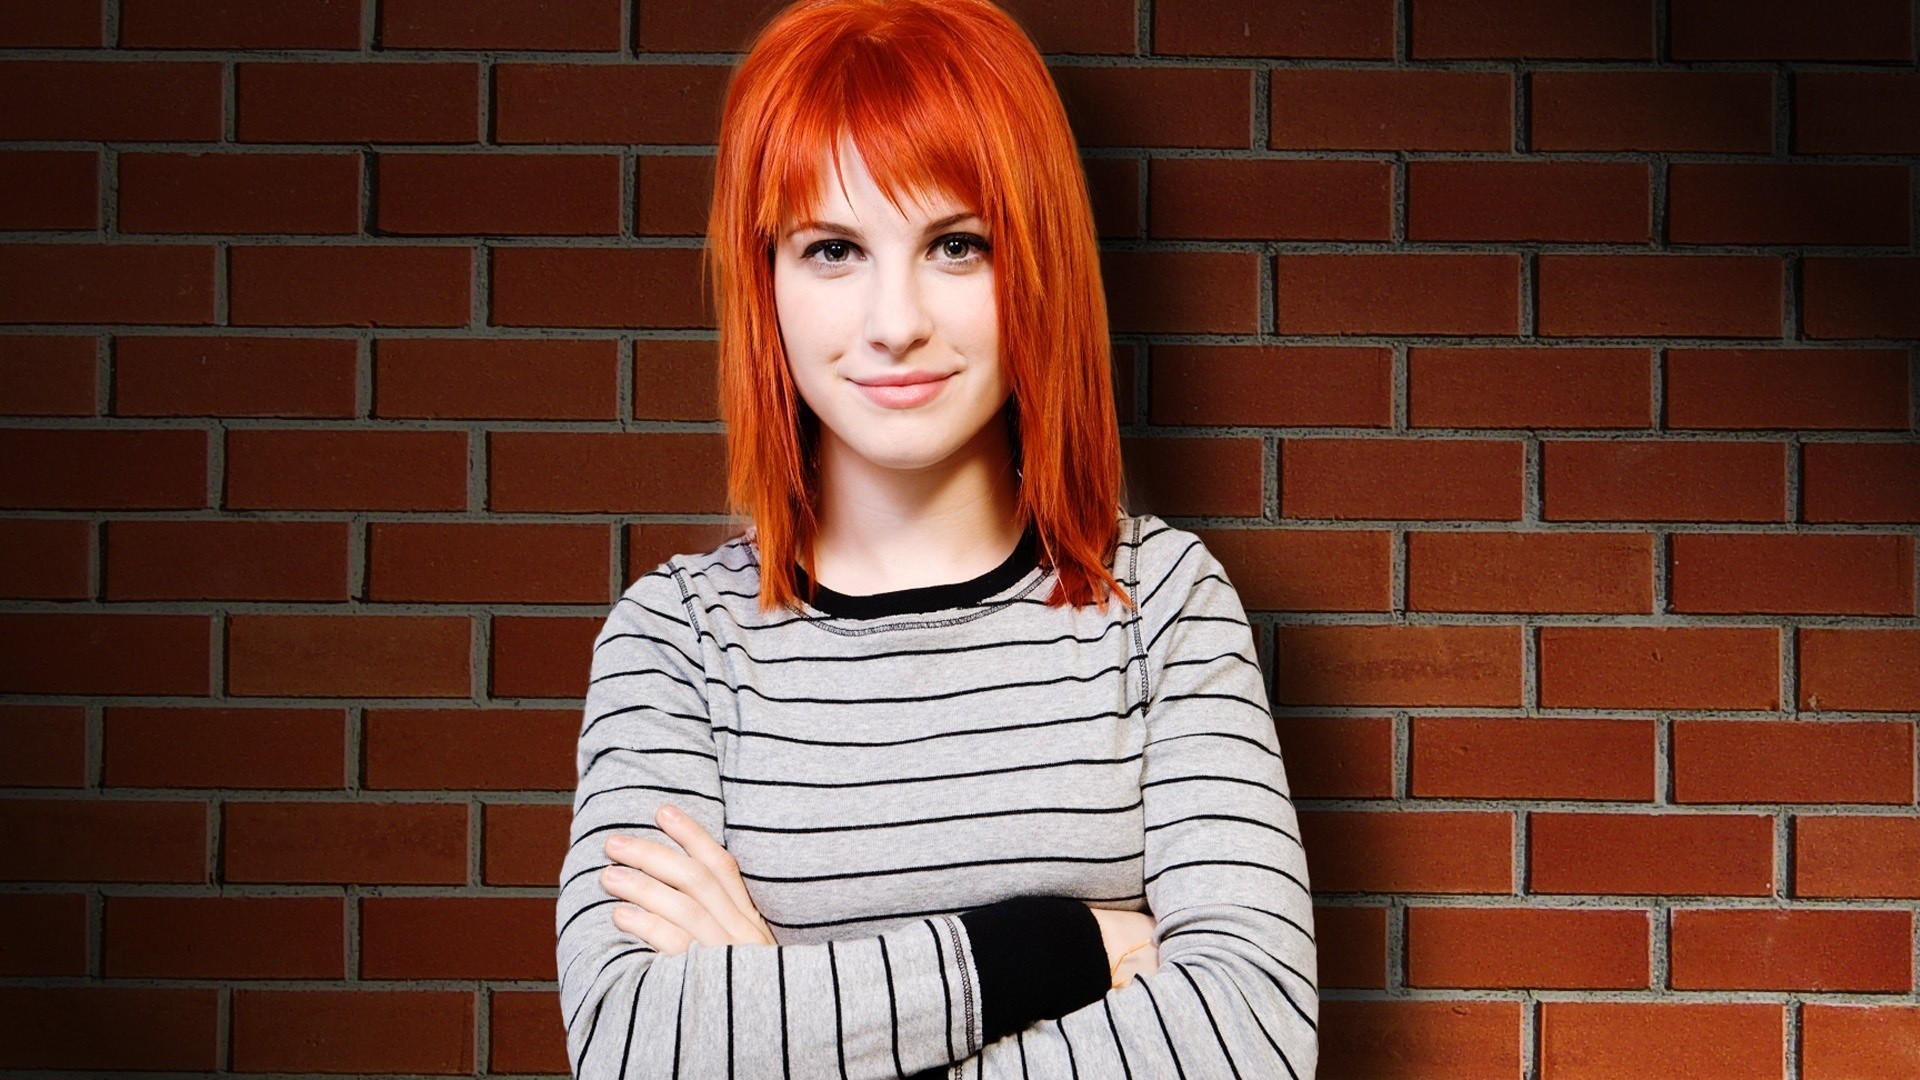 hayley williams paramore woman HD Wallpaper